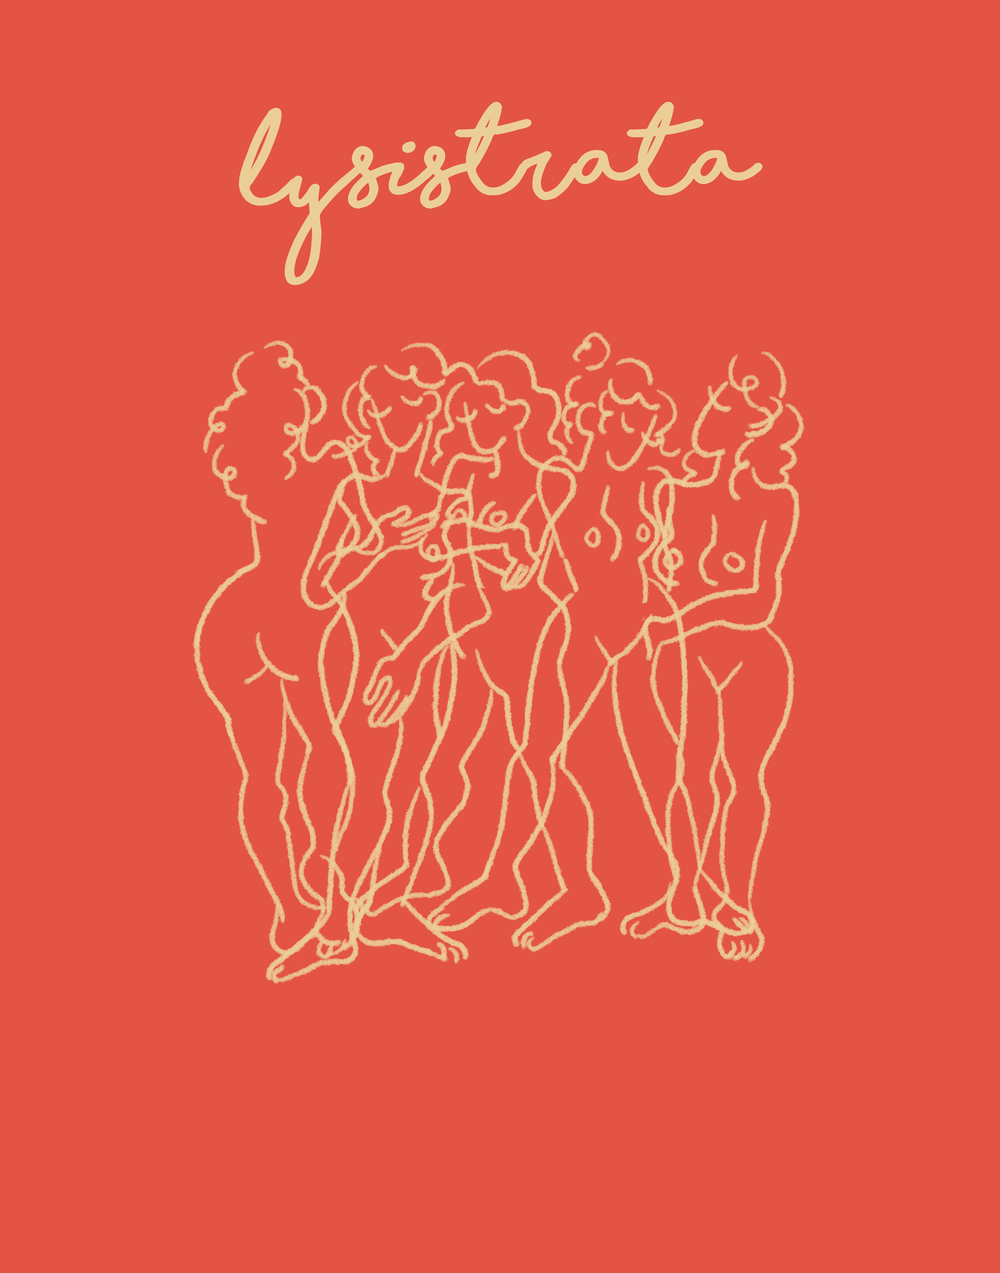 Poster for  Lysistrata , a play about women going on a sex strike to prevent their husbands from continuing the Peloponnesian War.